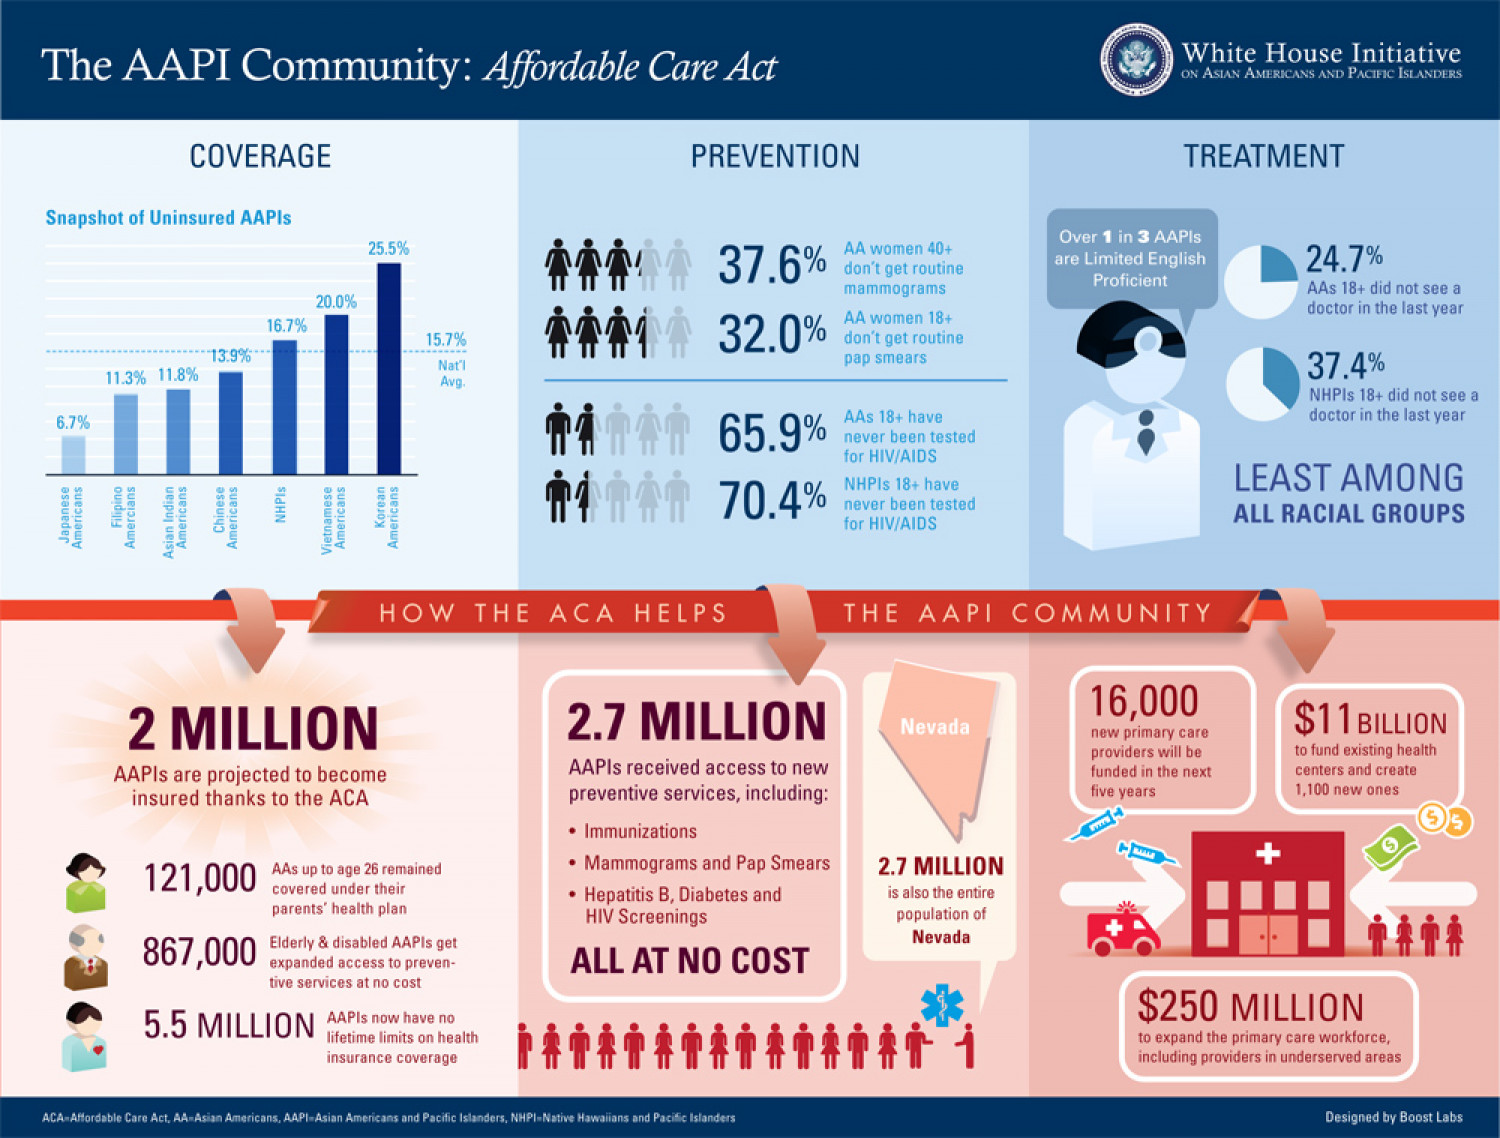 White House Initiative AAPI: Affordable Care Act | Visual.